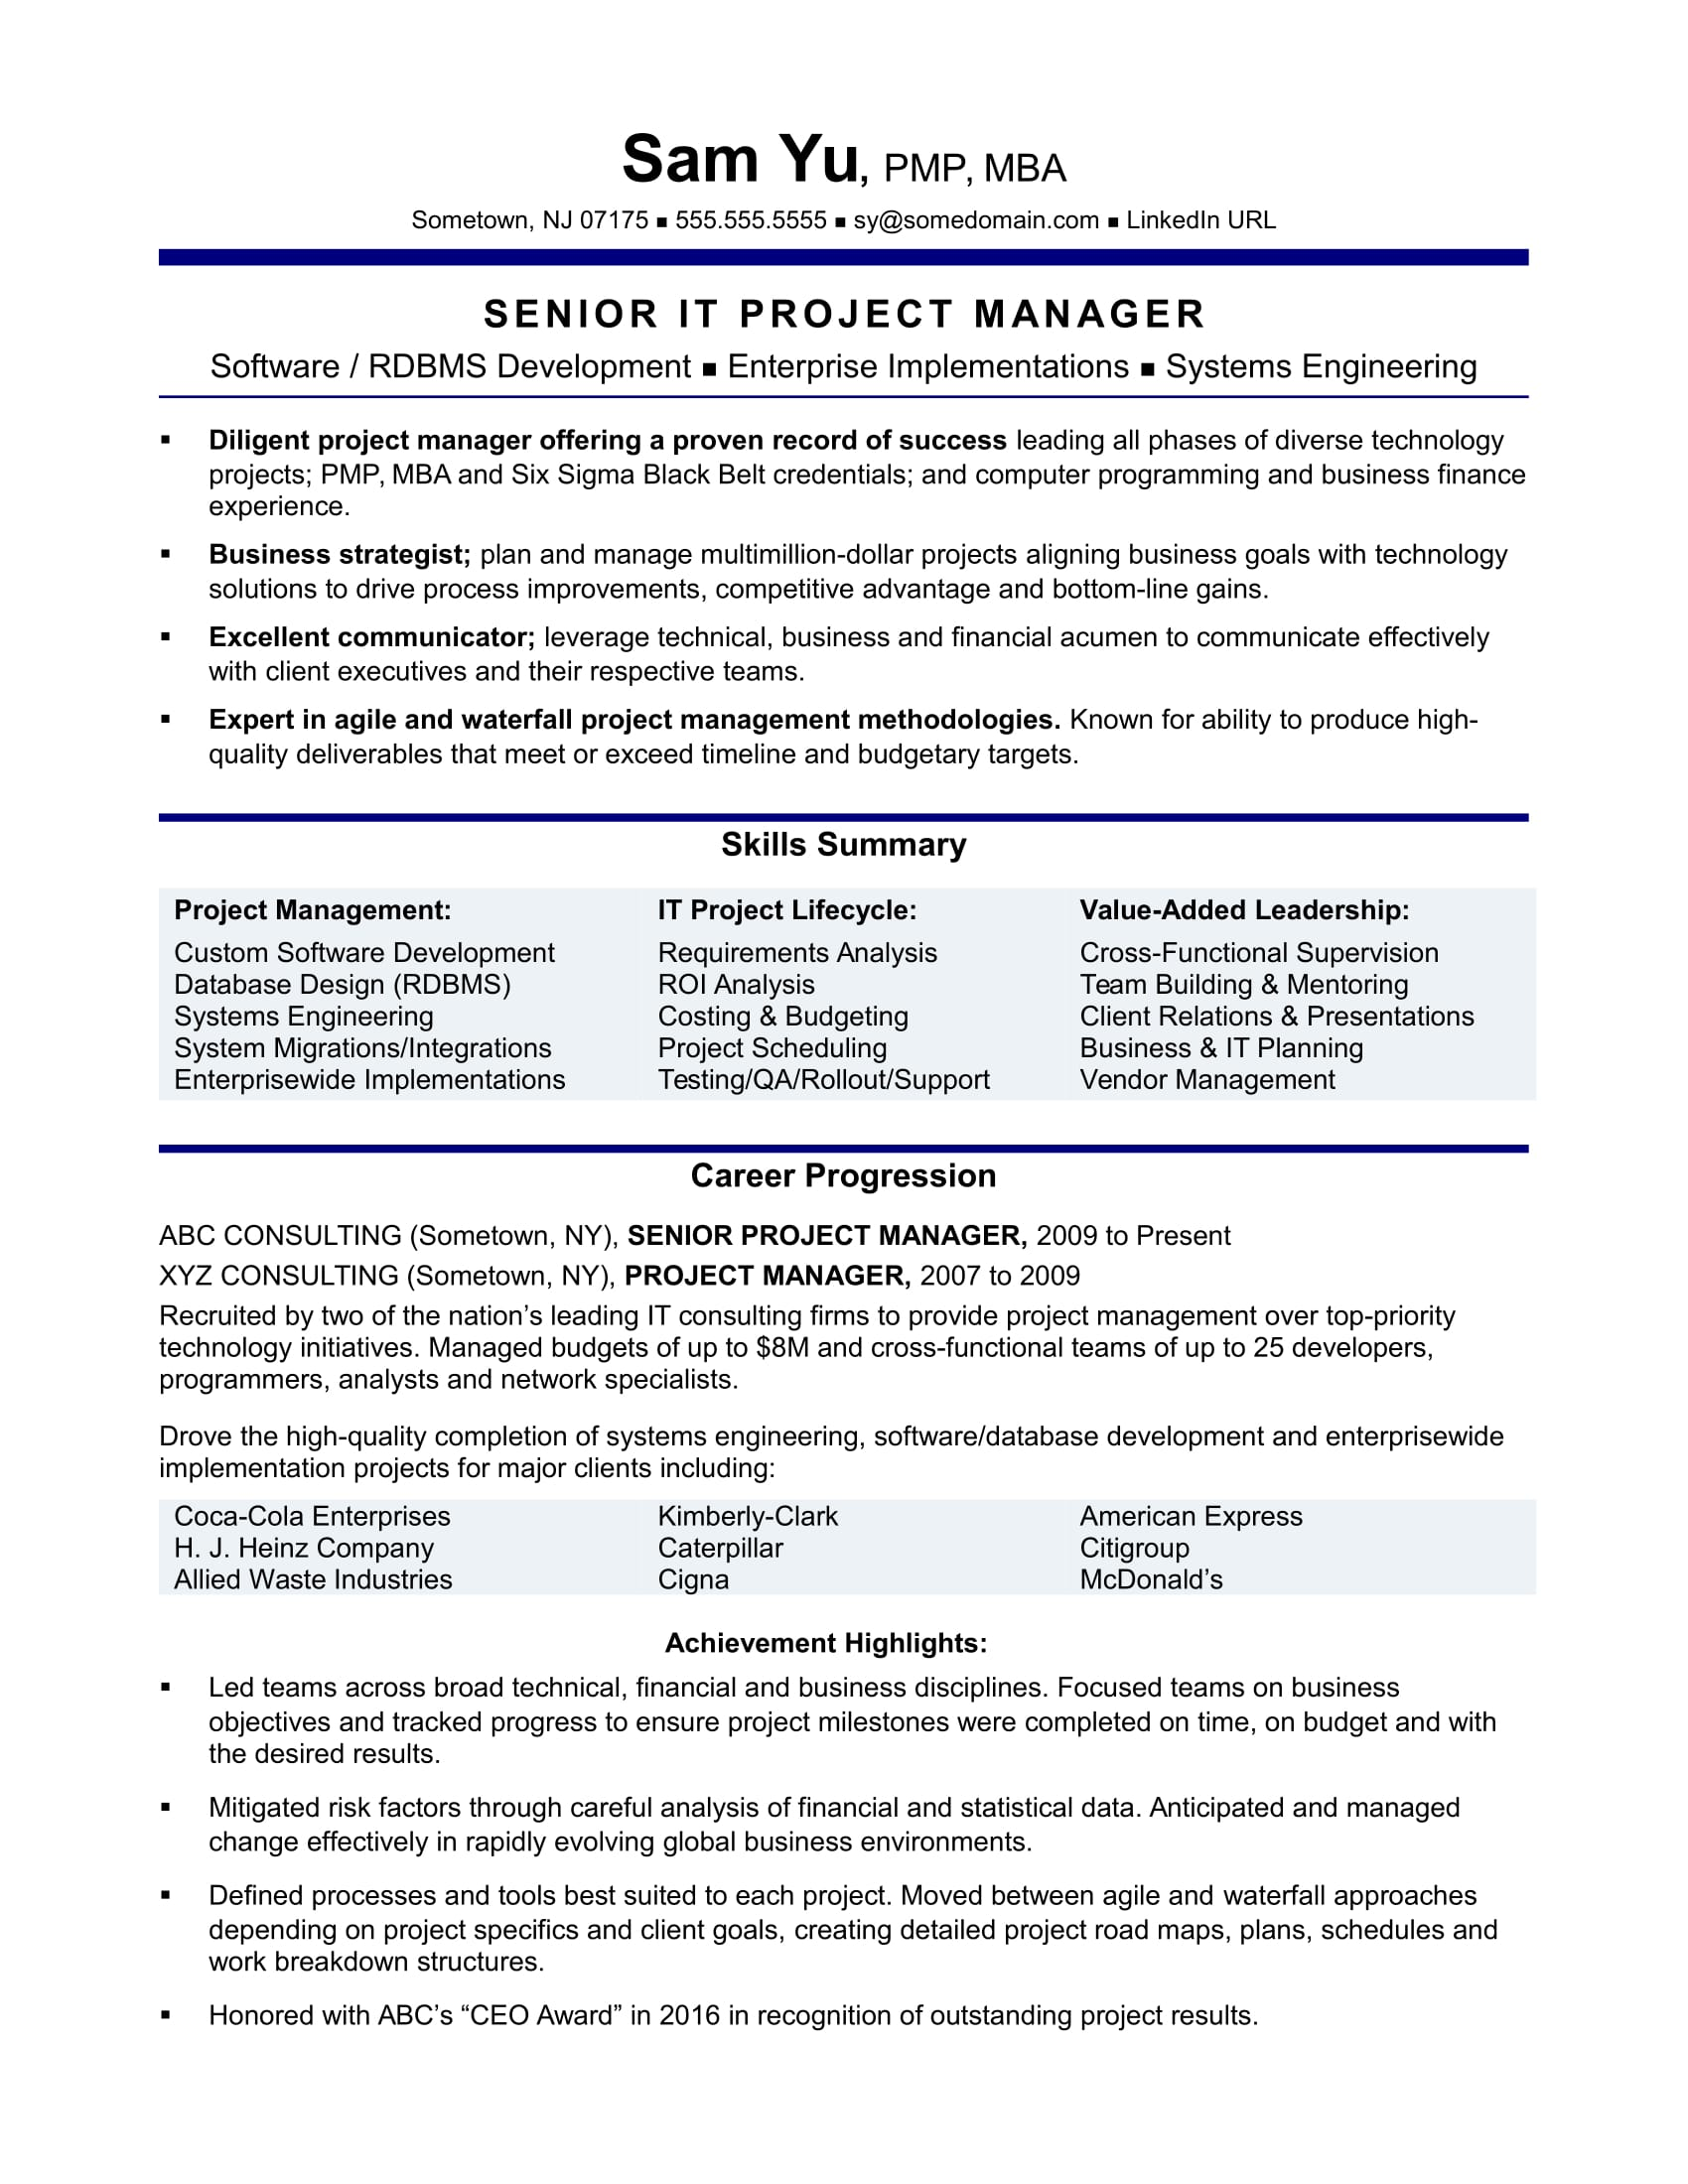 Resume Analysis Mesmerizing Experienced IT Project Manager Resume Sample Monster